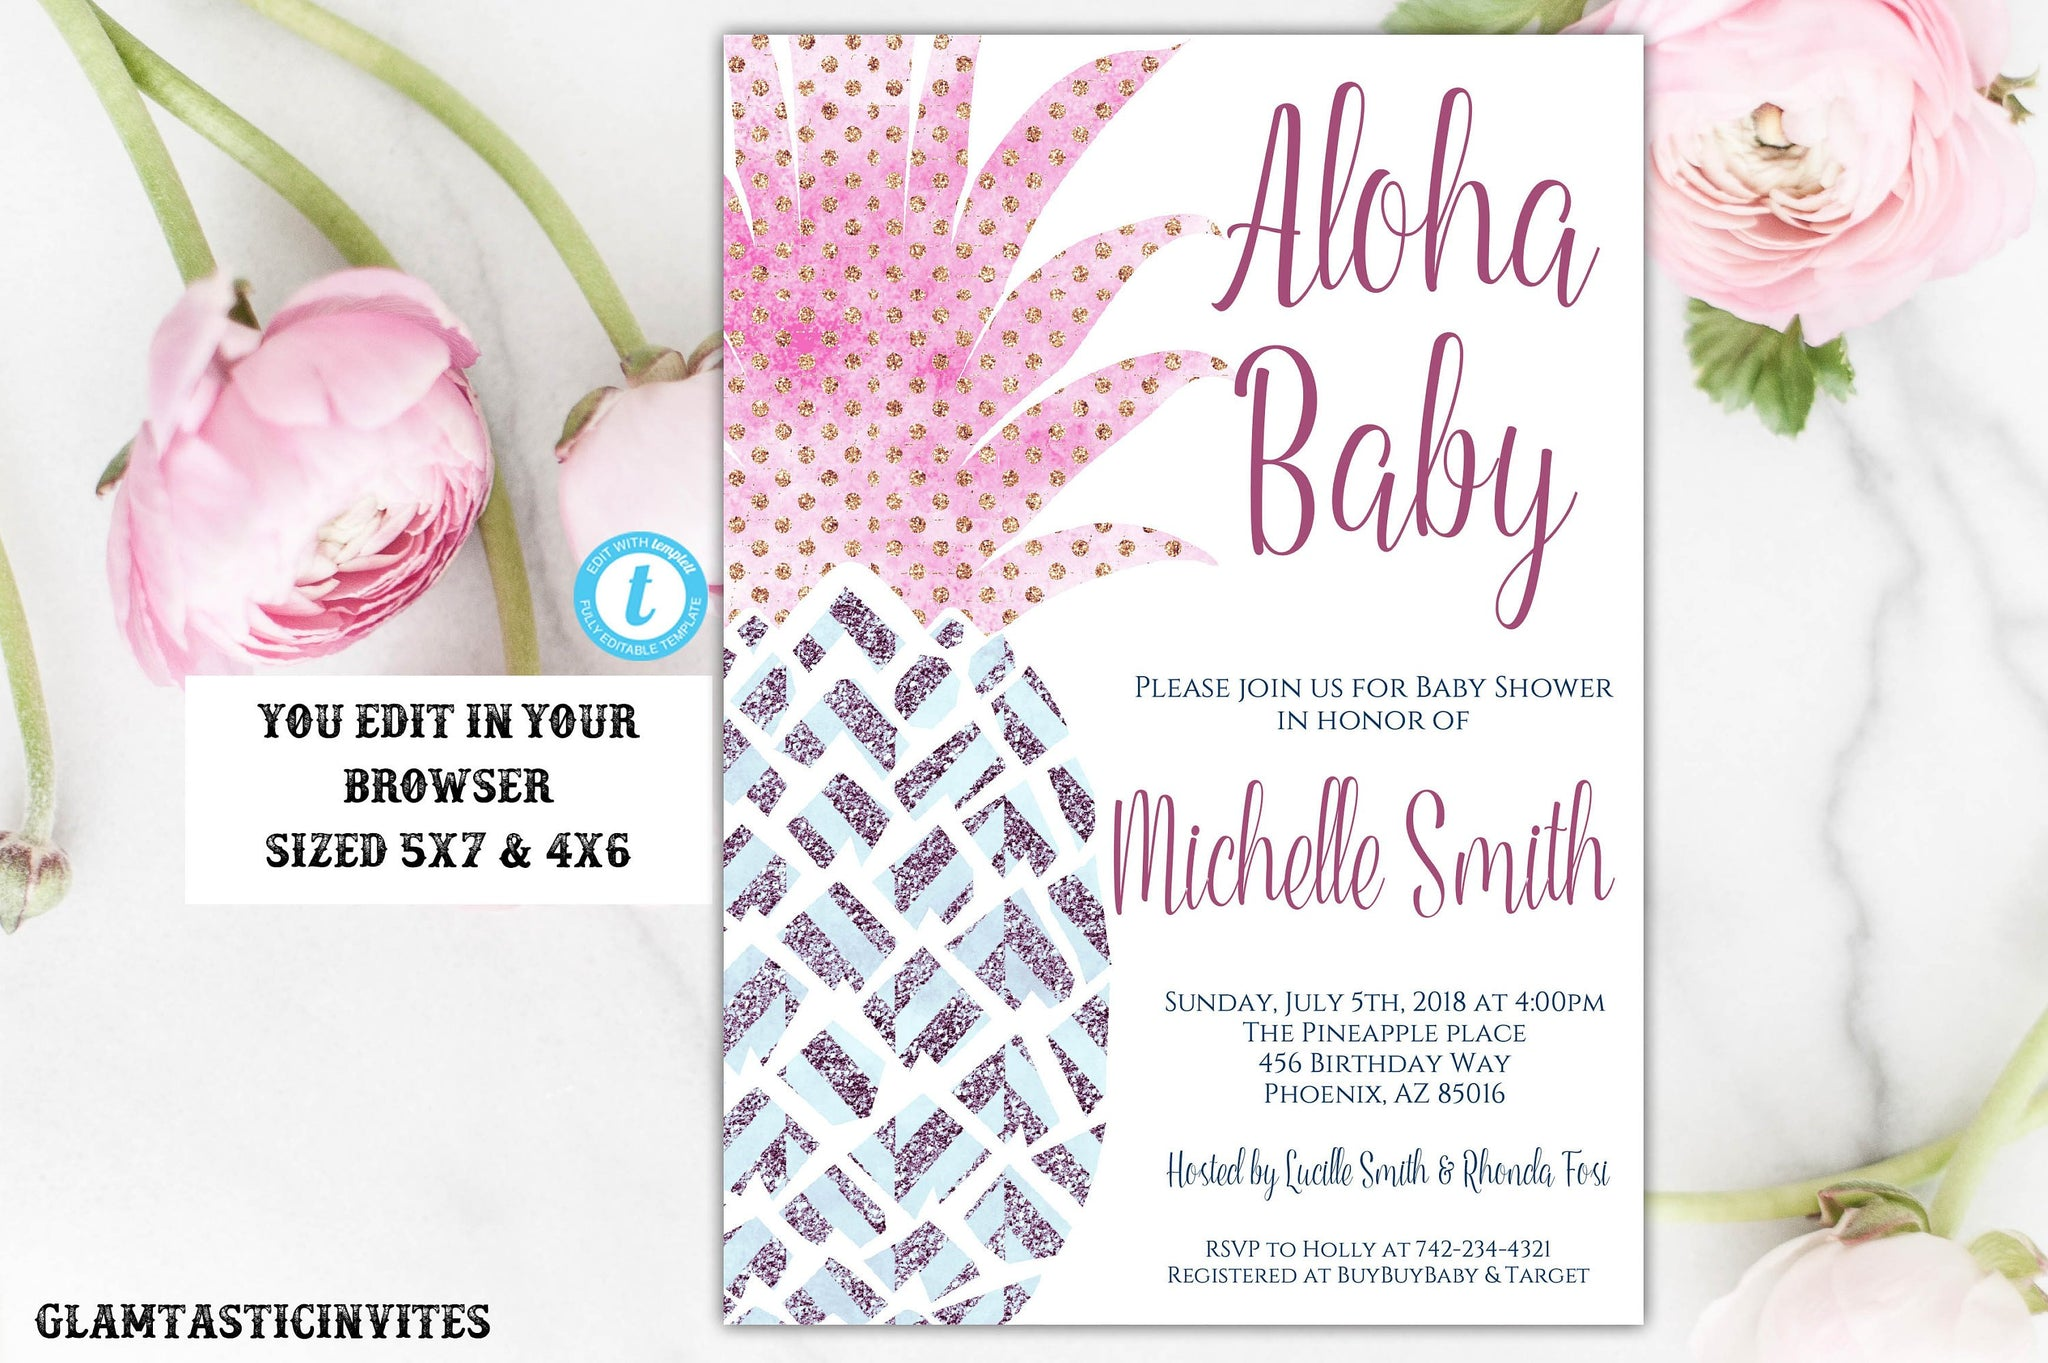 Pineapple Baby Shower Invitation, Instant Download, Baby Shower Template, Aloha Invitation, Aloha Baby, Editable, Pink, Gold, Blue, DIY Card